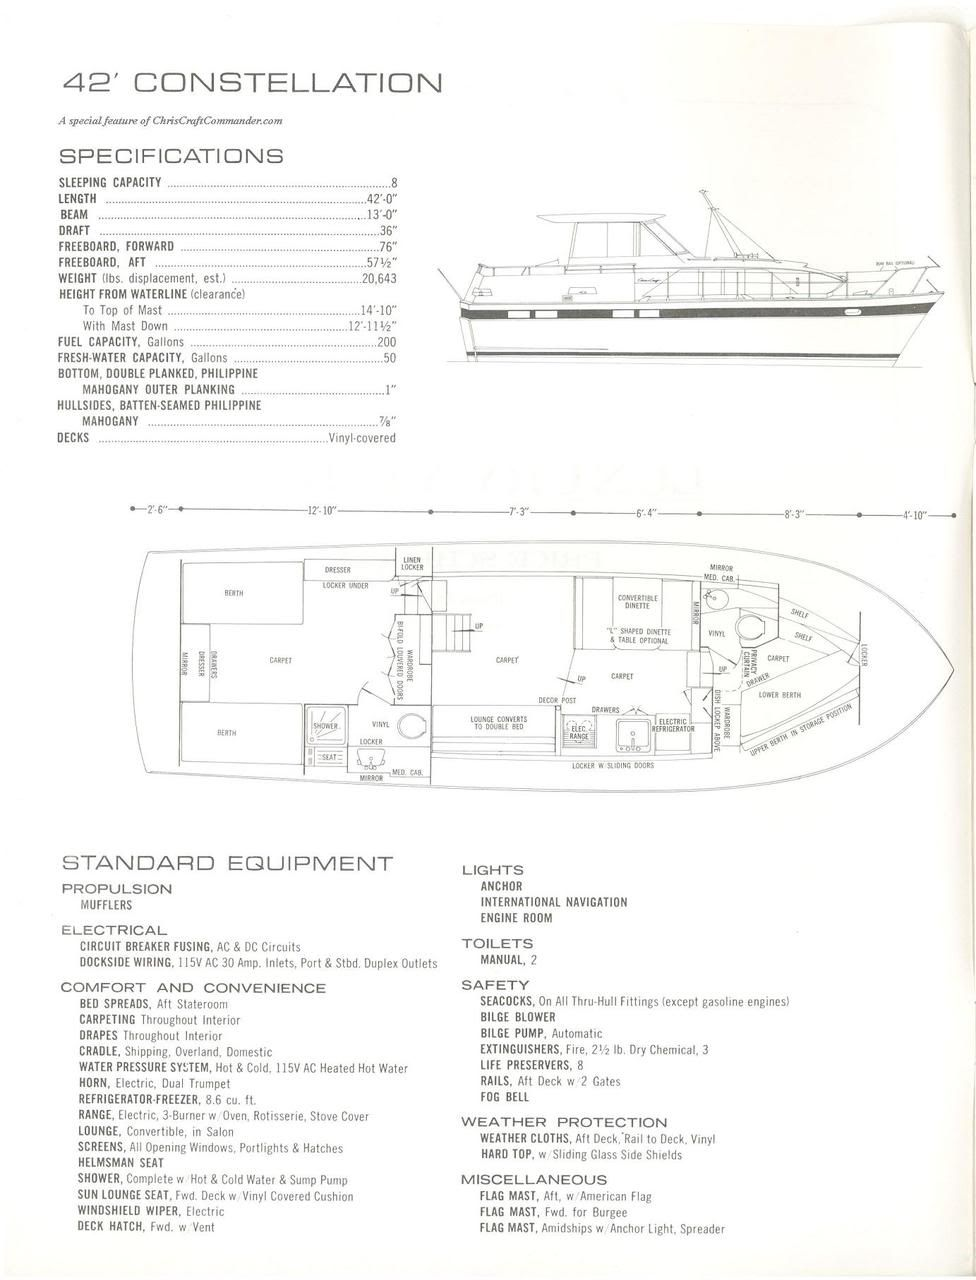 1972 42 Chris Craft Constellation Specs And Floorplan Deck Boat Wiring Diagram